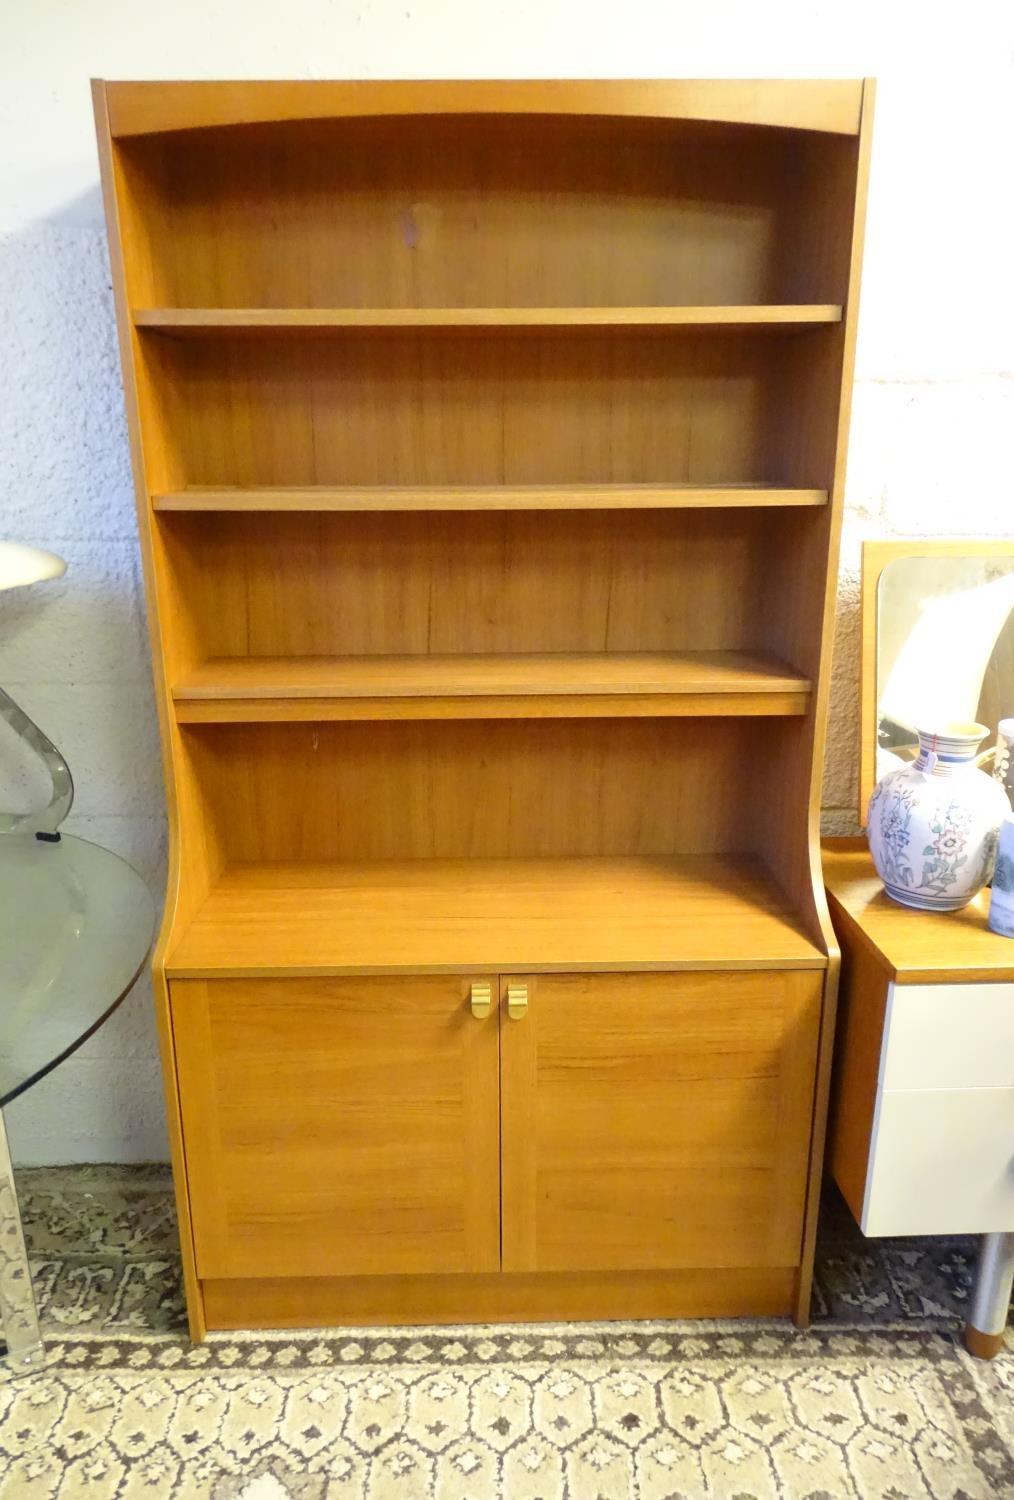 Vintage Retro, Mid Century: a Schreiber dresser bookcase, in teak finish with three shelves and - Image 3 of 7